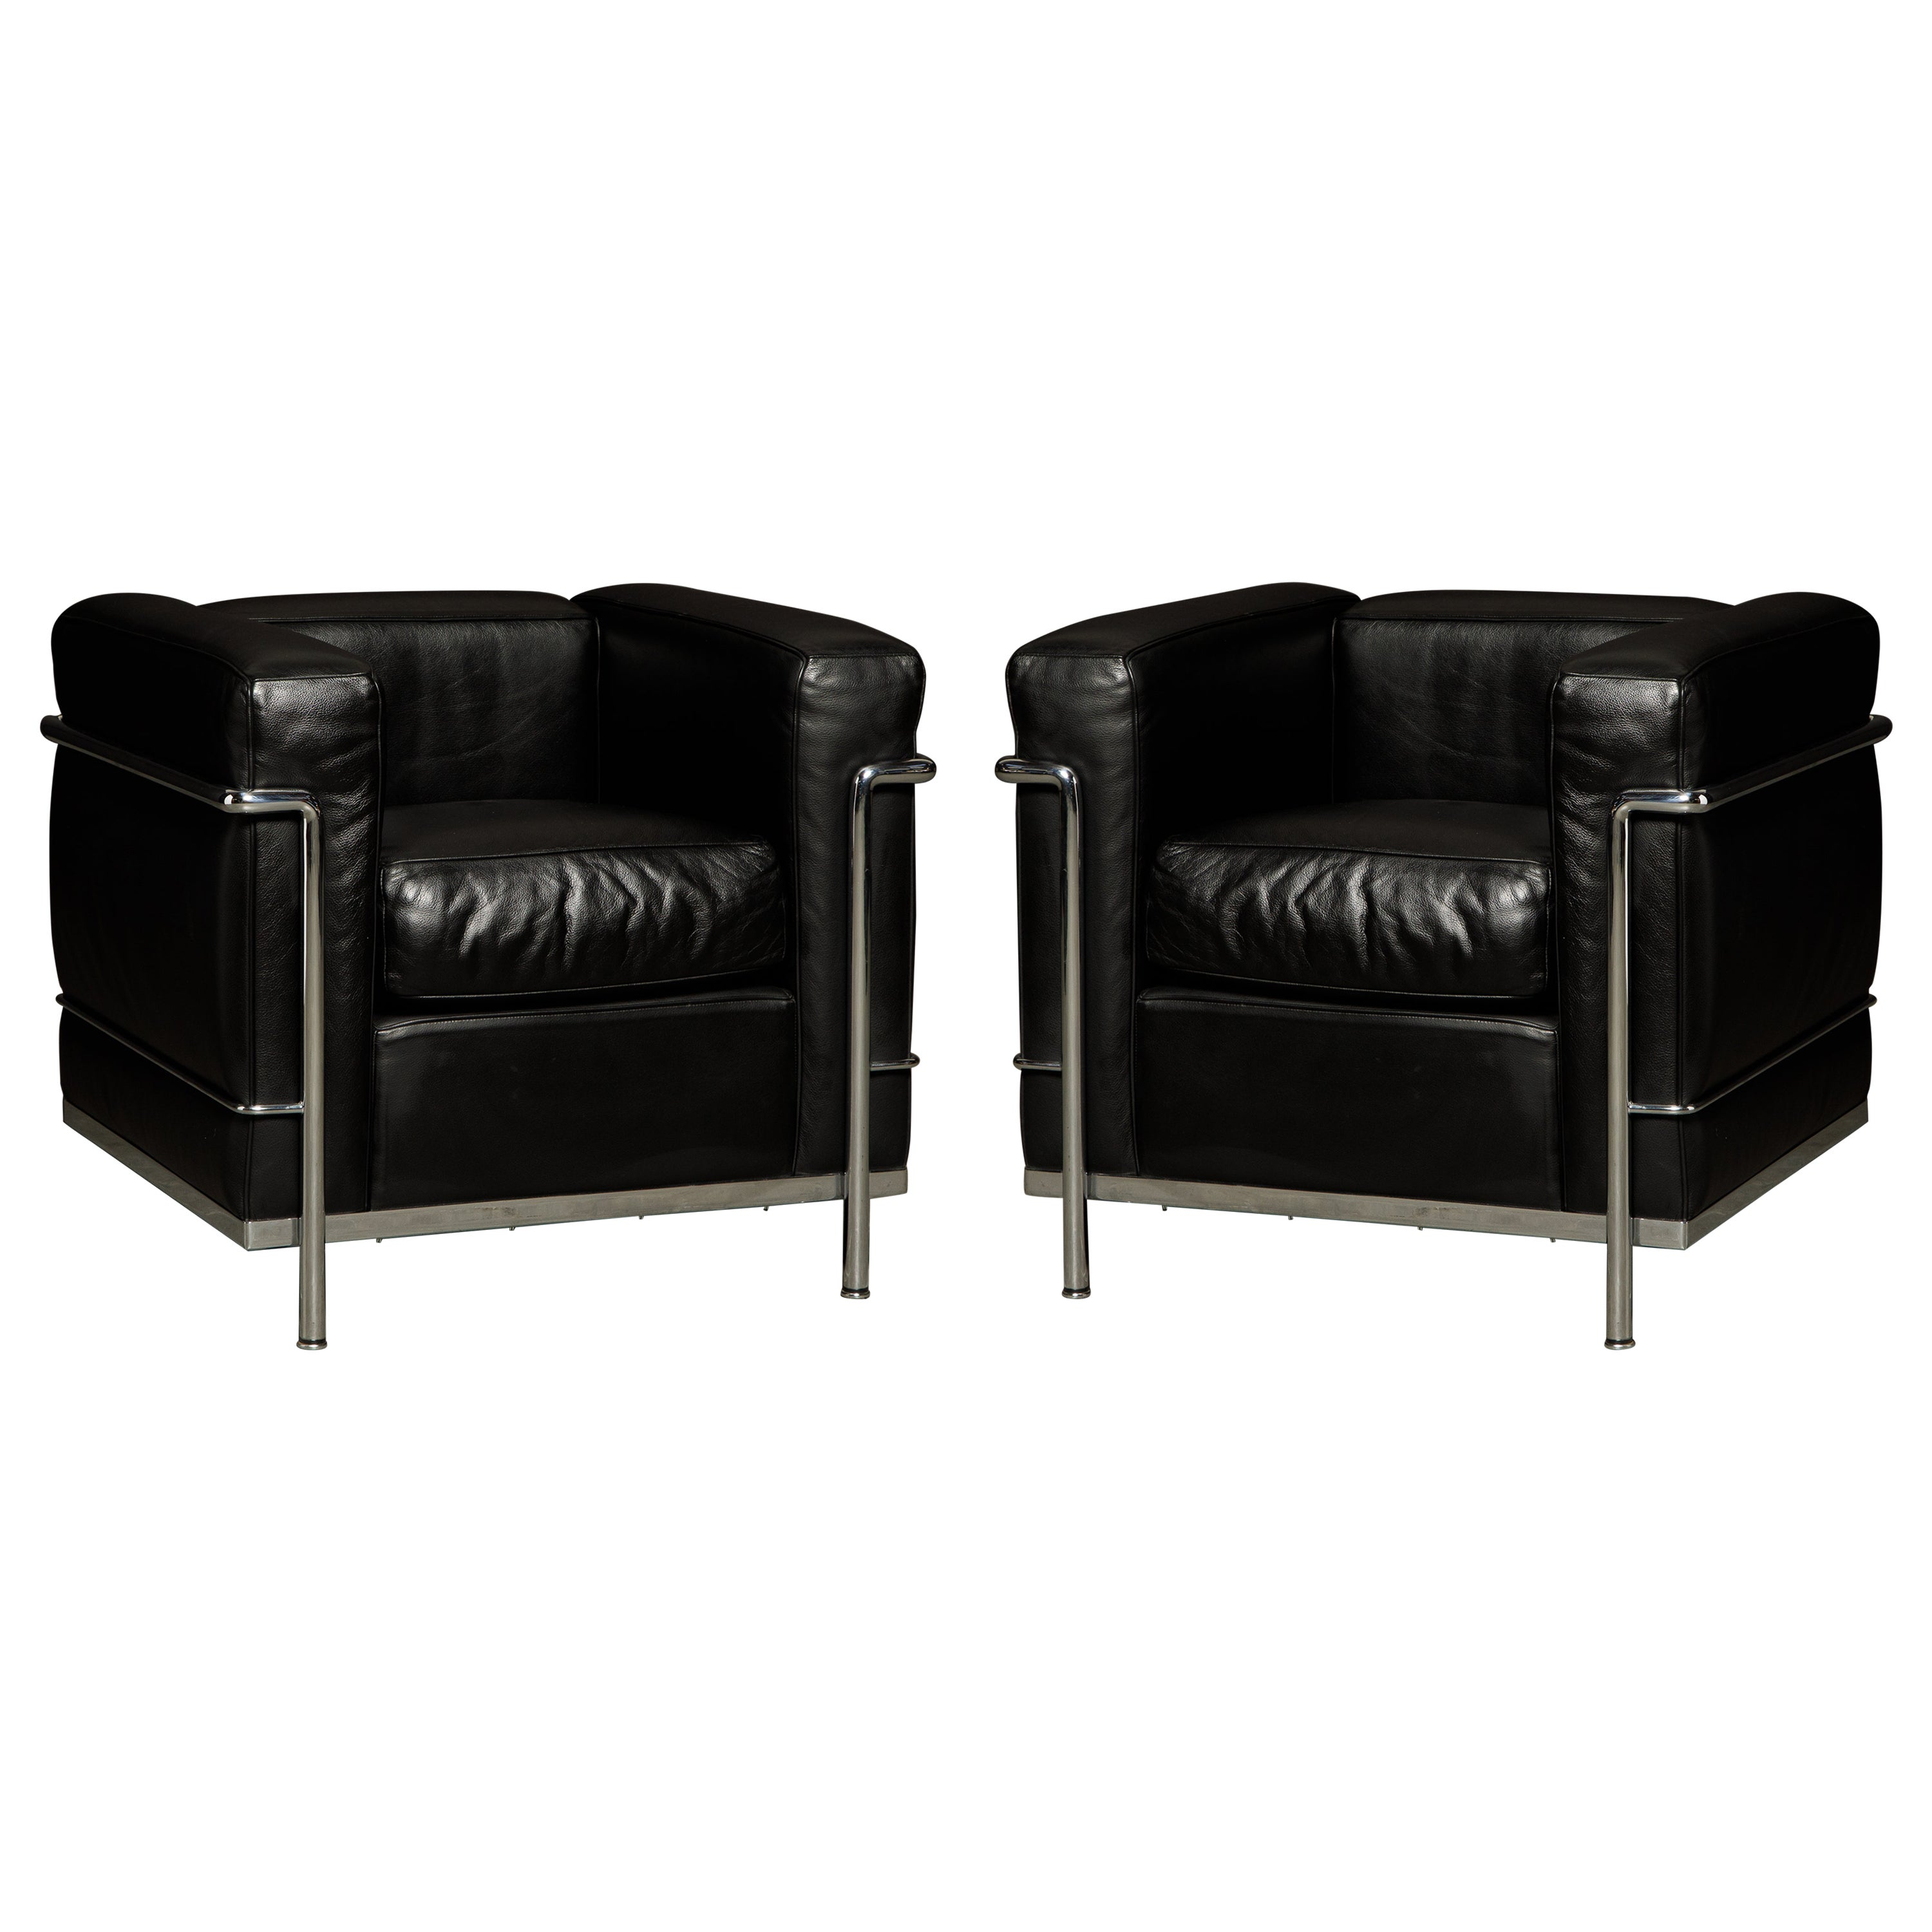 Pair of 'LC2' Black Leather Club Chairs by Le Corbusier for Cassina, Signed